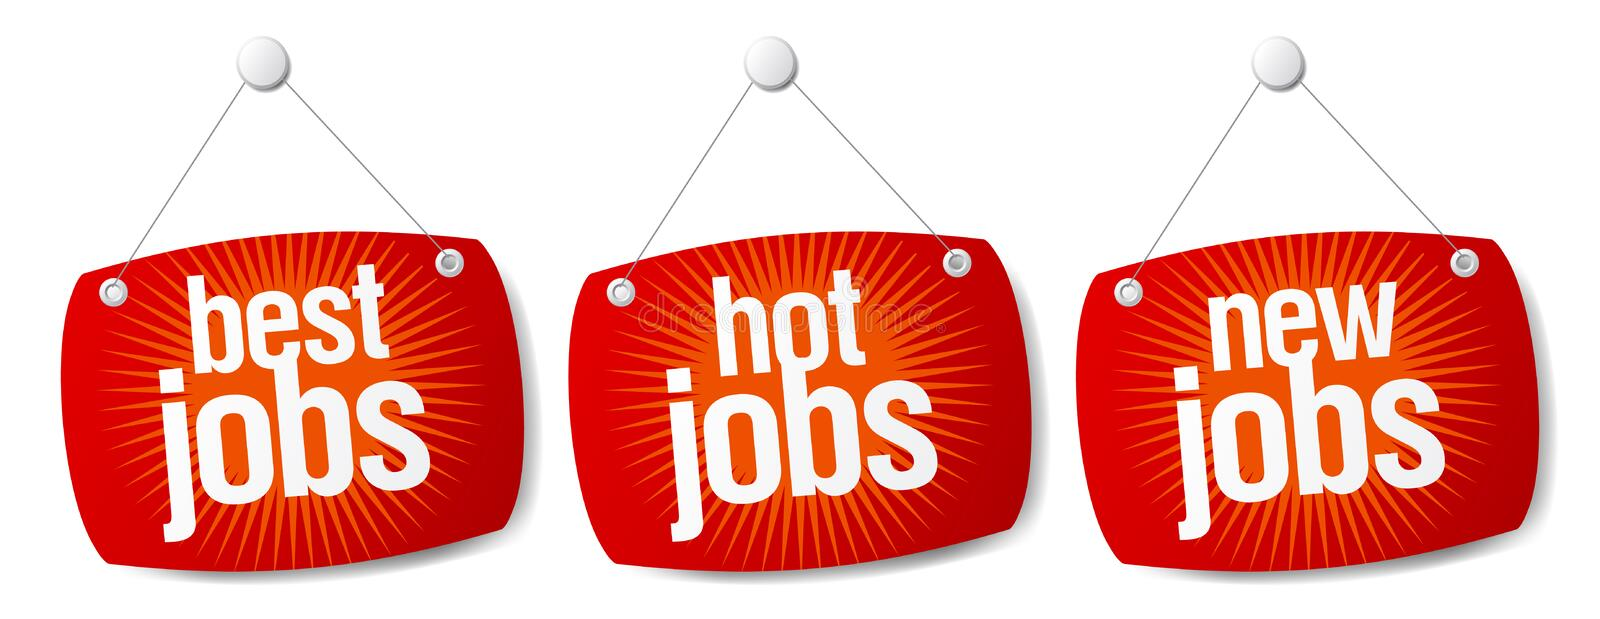 Best jobs signs stock illustration